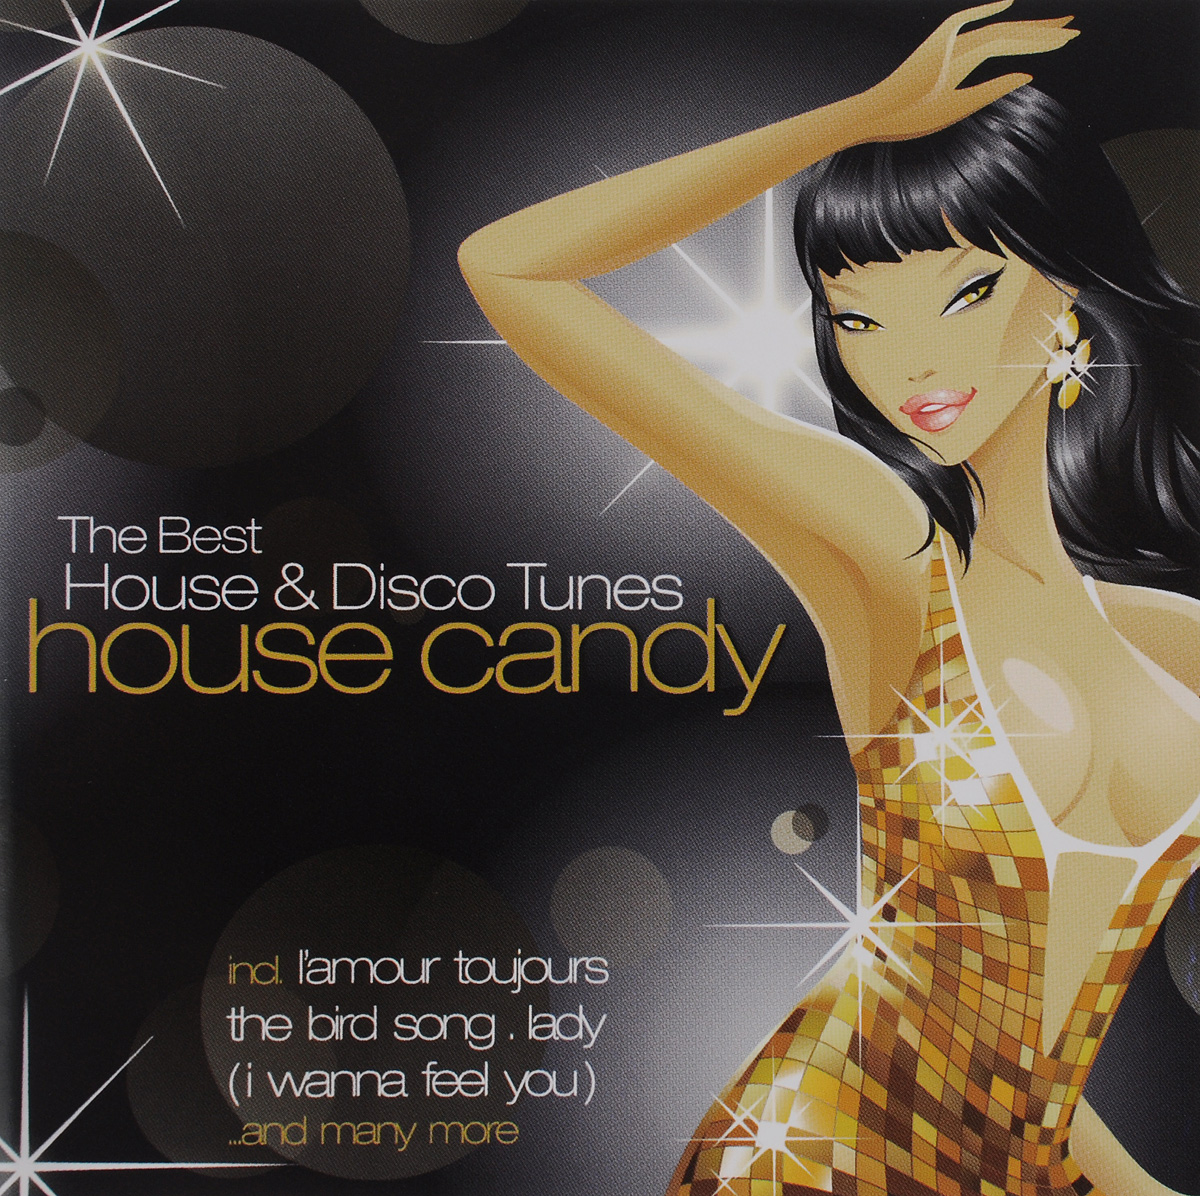 54,Черил Линн,Пол Гетта,Jam & Tonic,Эрик Амадор,Genius,Die Elfen,DJ Sneak,Antoine,DJ Sleazy House Candy - The Best House & Disco Tunes (2 CD) музыка cd dvd dj dj best disco dsd cd